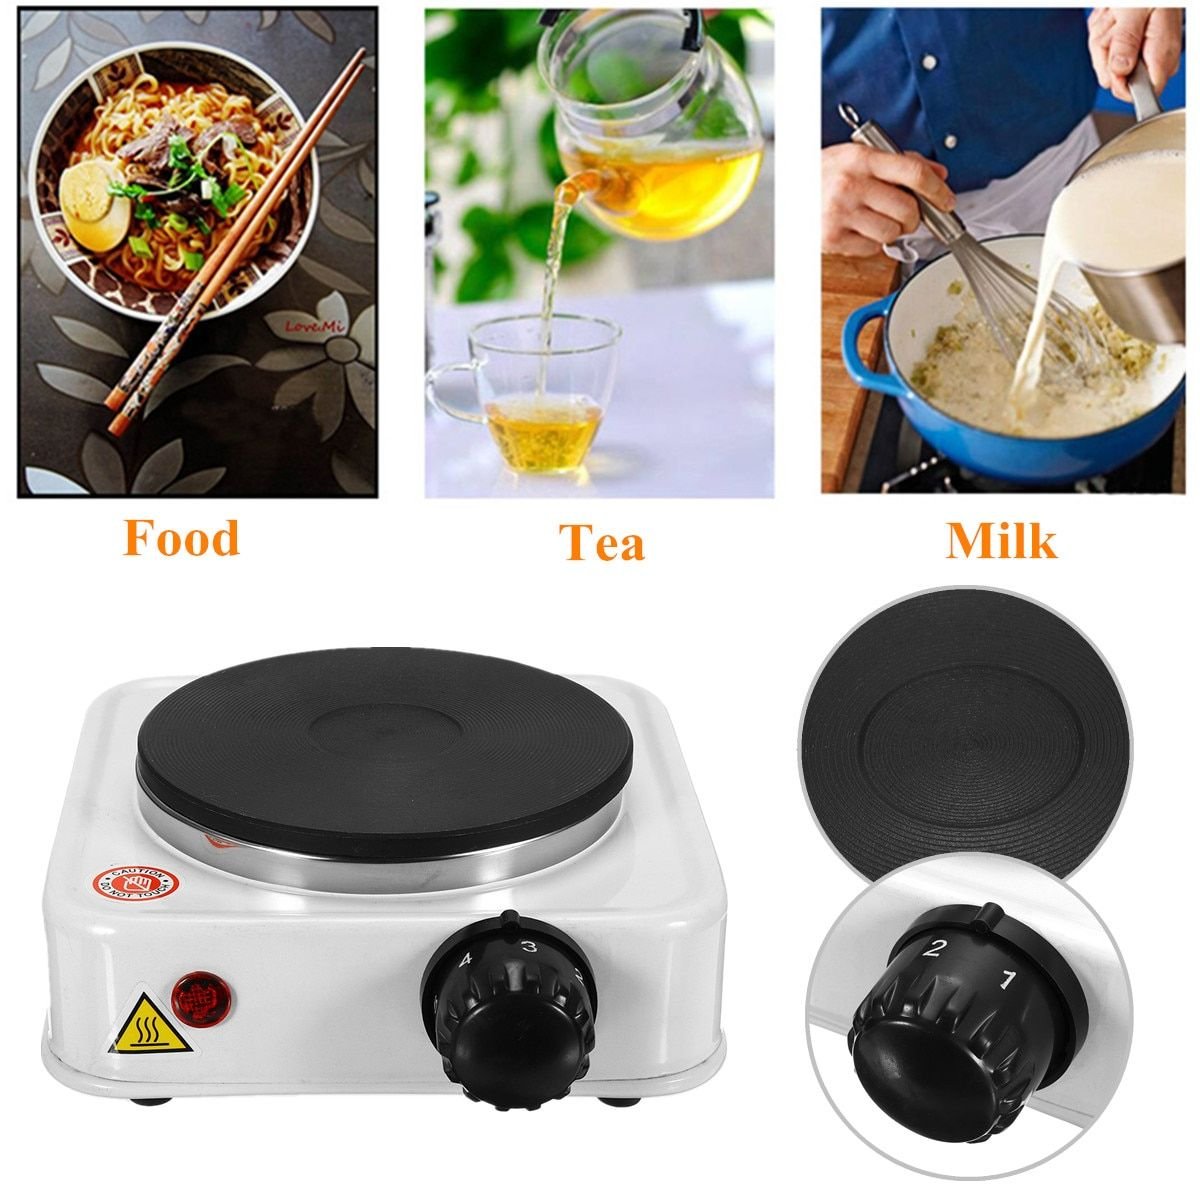 1000W Electric Burner Stove 110VUS/220V EU Quick Sustained Heat Eco-friendly Hot Plate Portable Kitchen Cooker Coffee Pot Heater